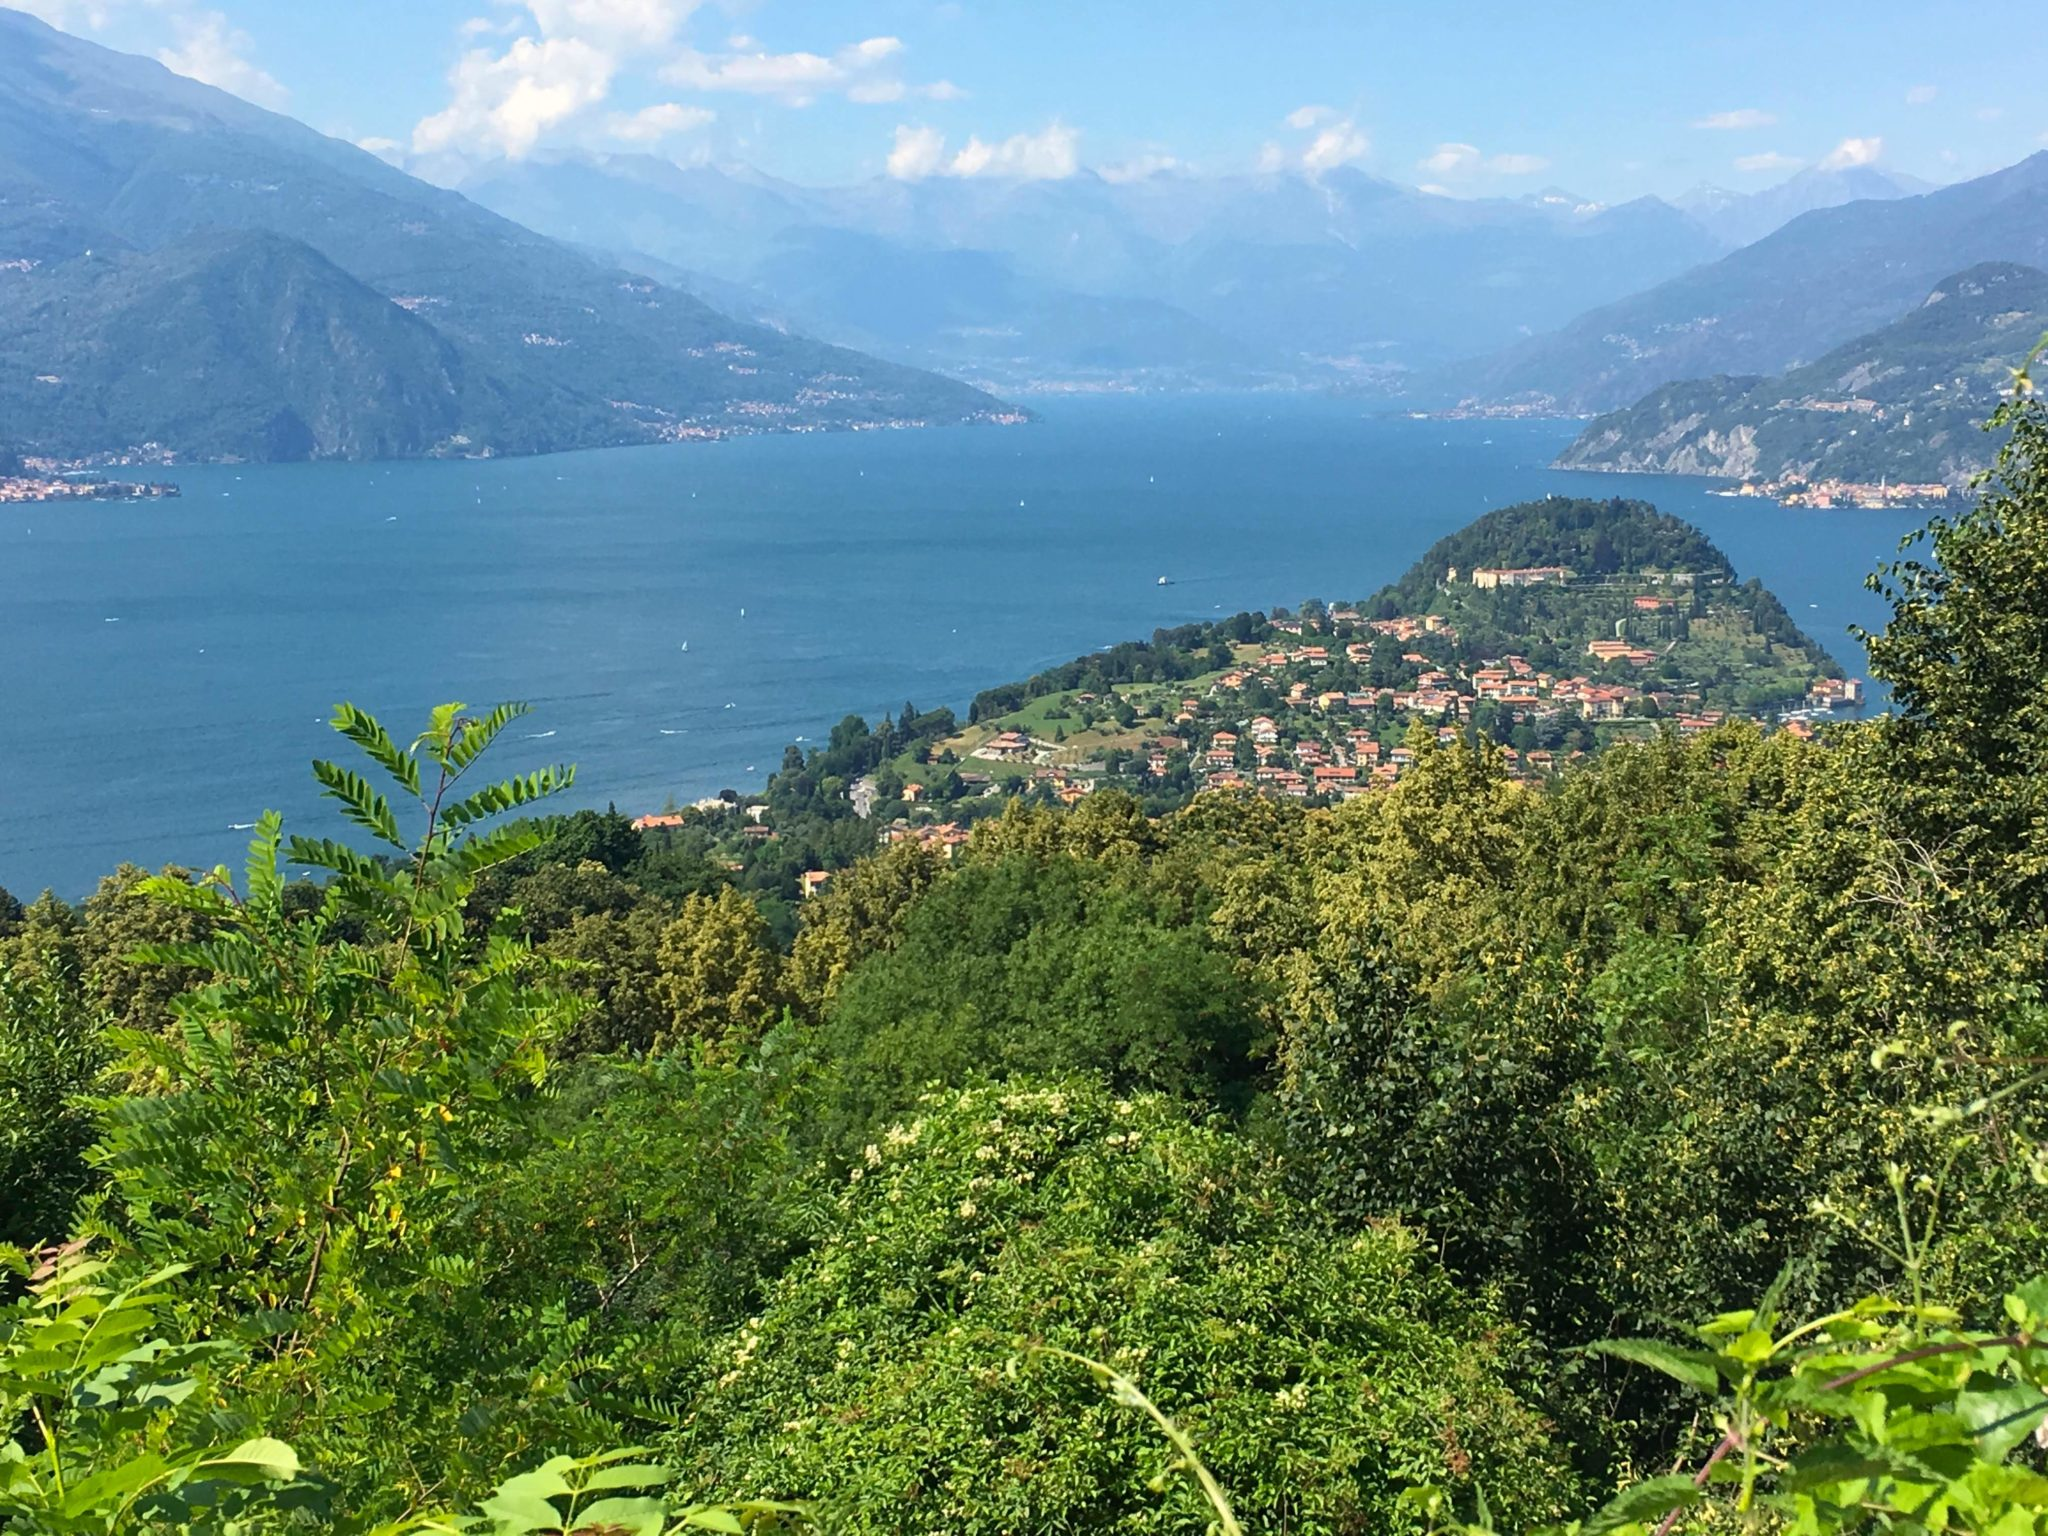 View of Lake Como from Above